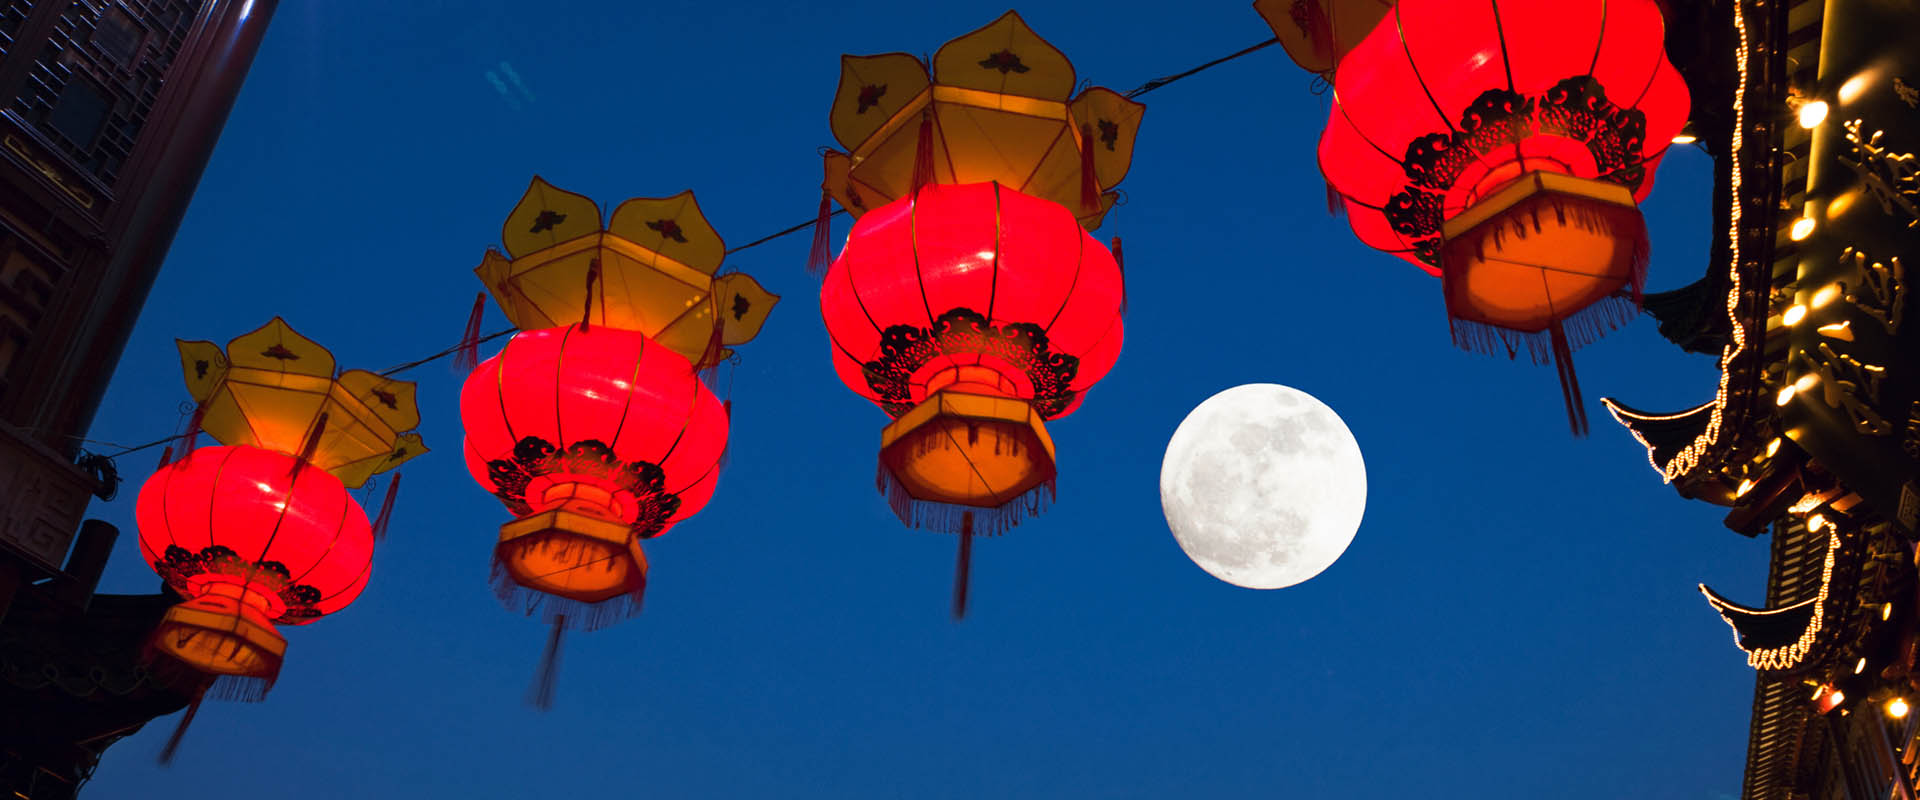 China Mid-Autumn Festival